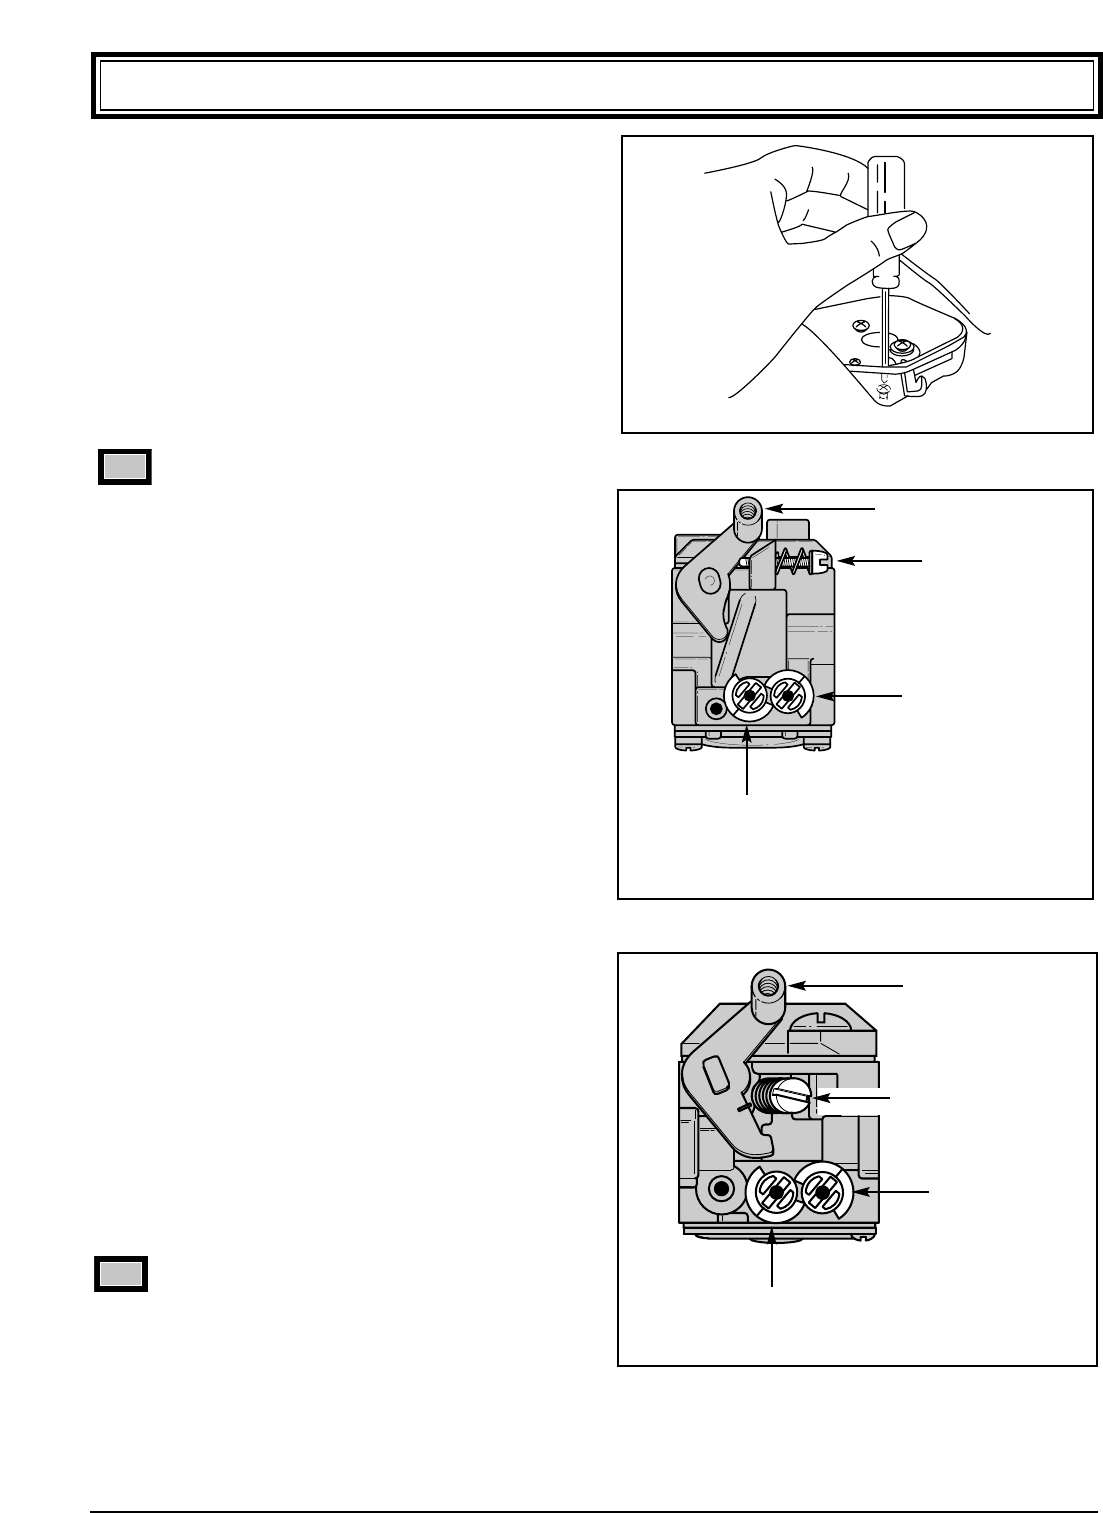 Page 14 Of Ryobi Blower 310r User Guide Manualsonlinecom Carburetor Zama C1uh13 Diagram And Parts List For Homelite Leaf 3 Initial High Speed Mixture Idle